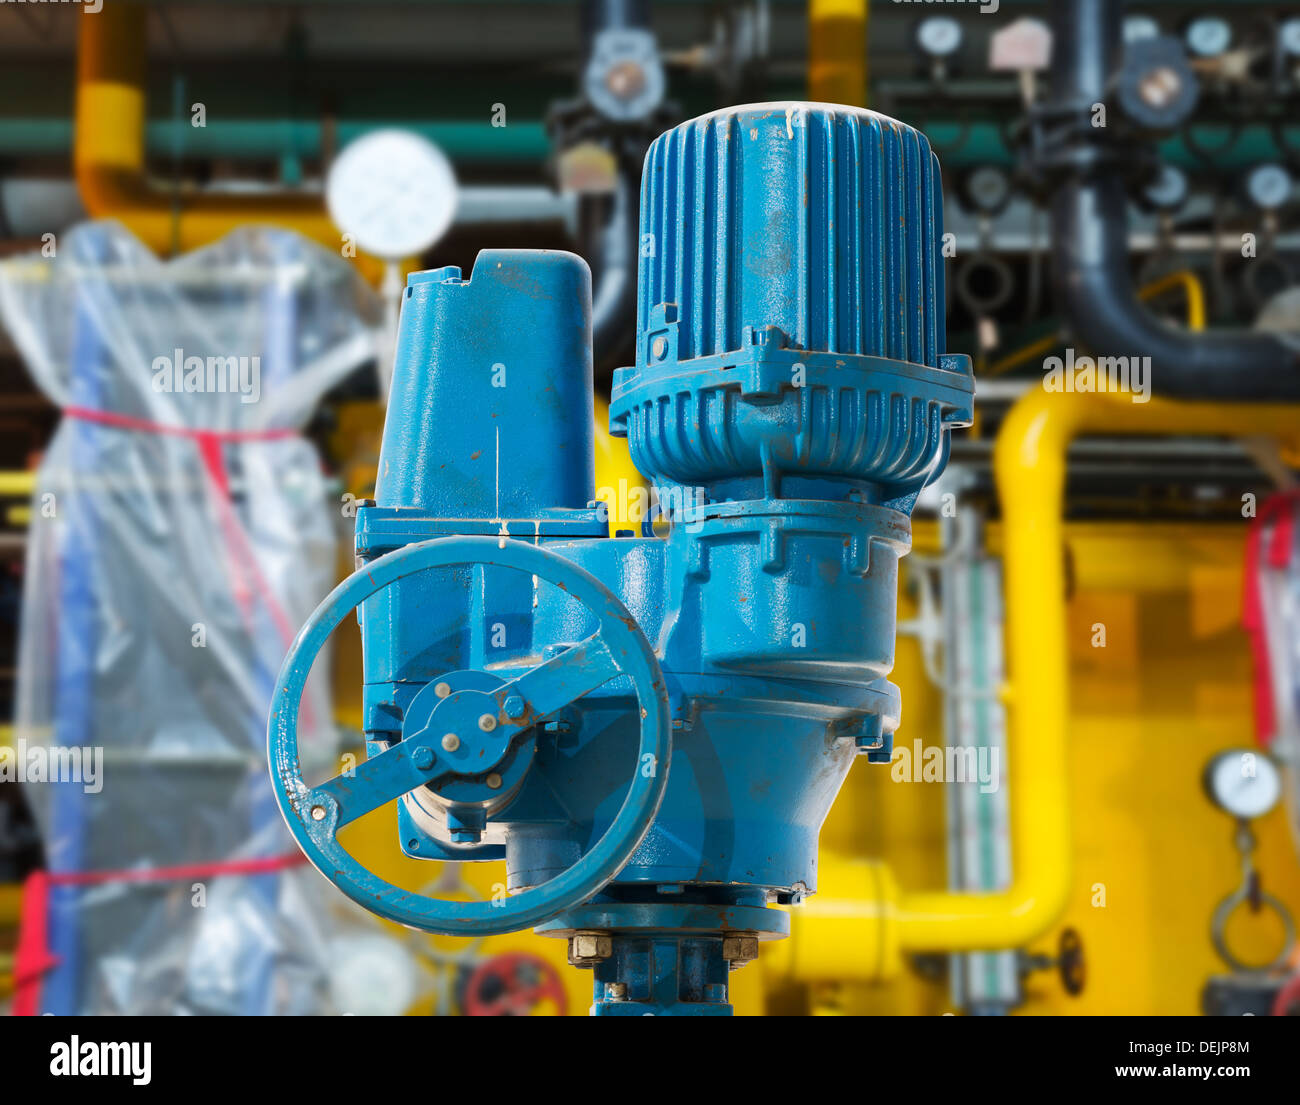 Large industrial boiler room Stock Photo: 60648916 - Alamy